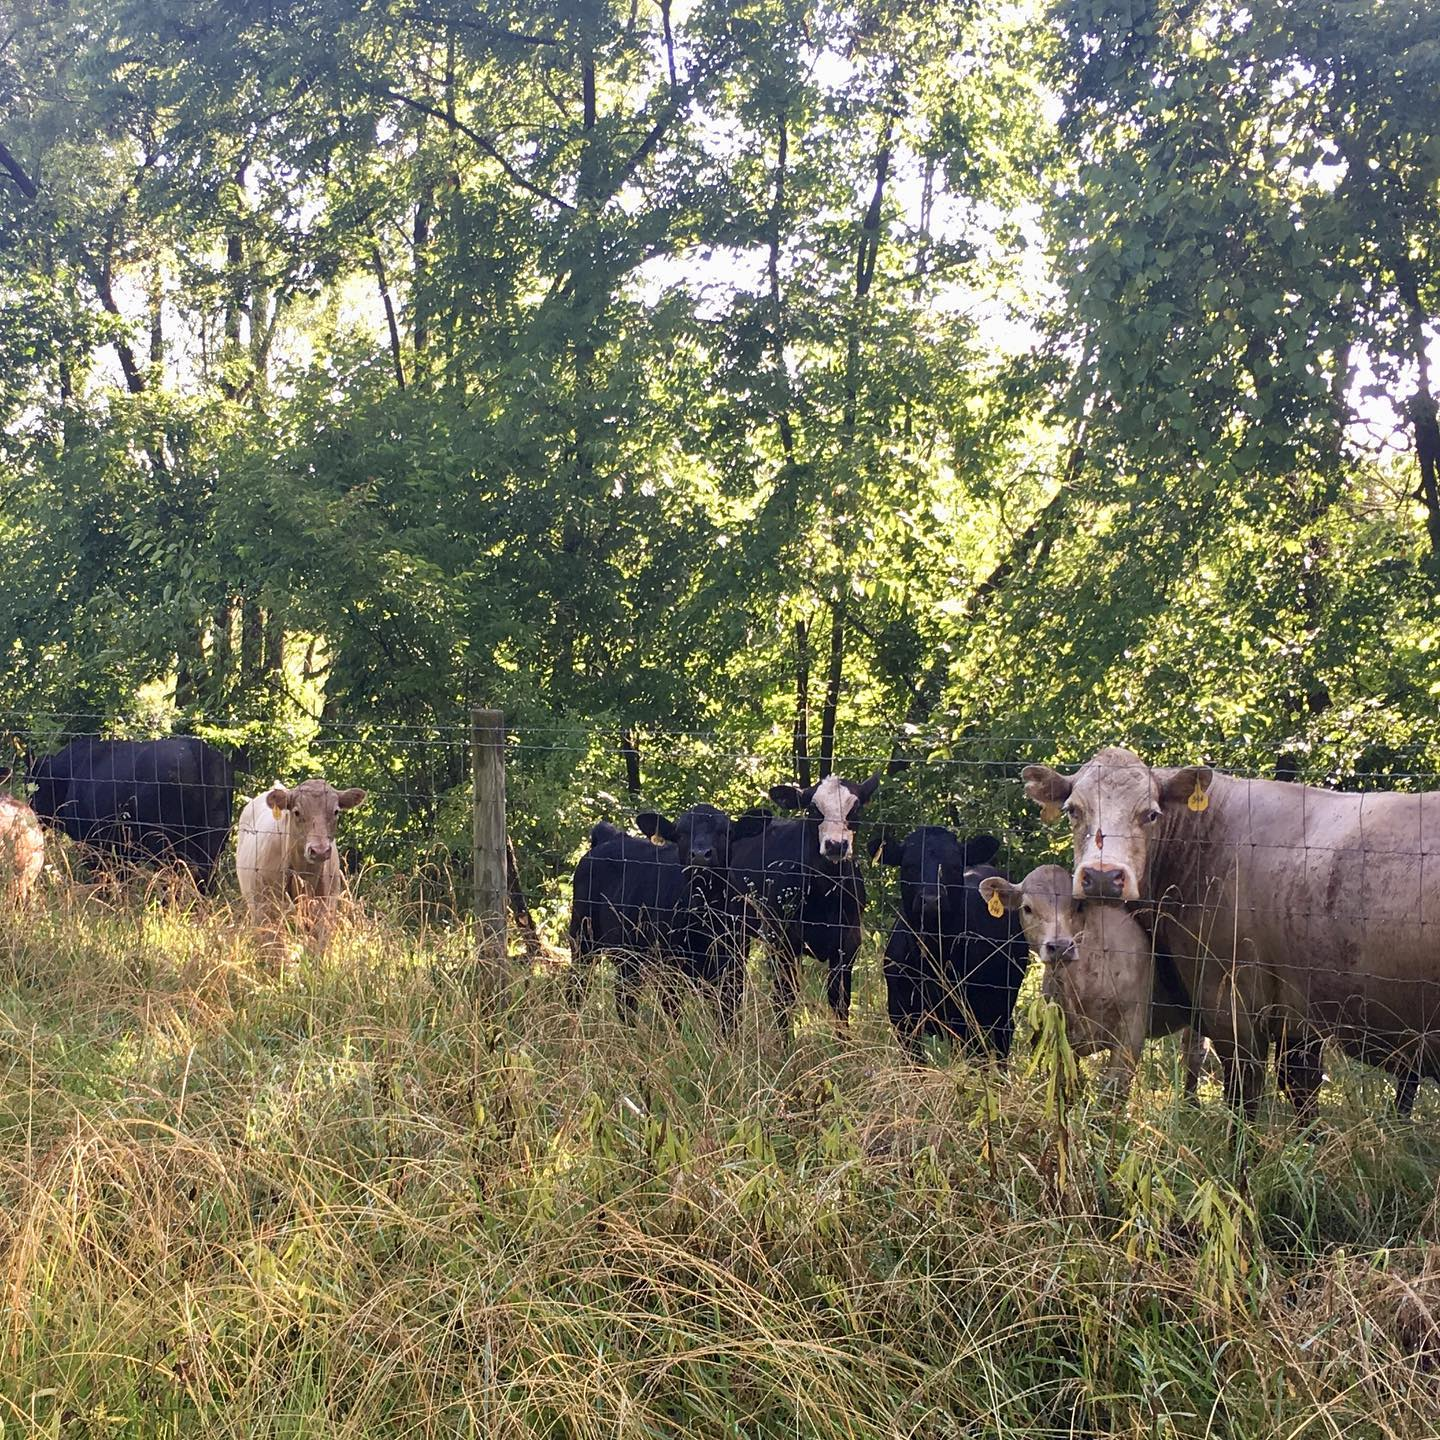 Had some friends on my run today. #cows #gusthelab #summer #countryliving